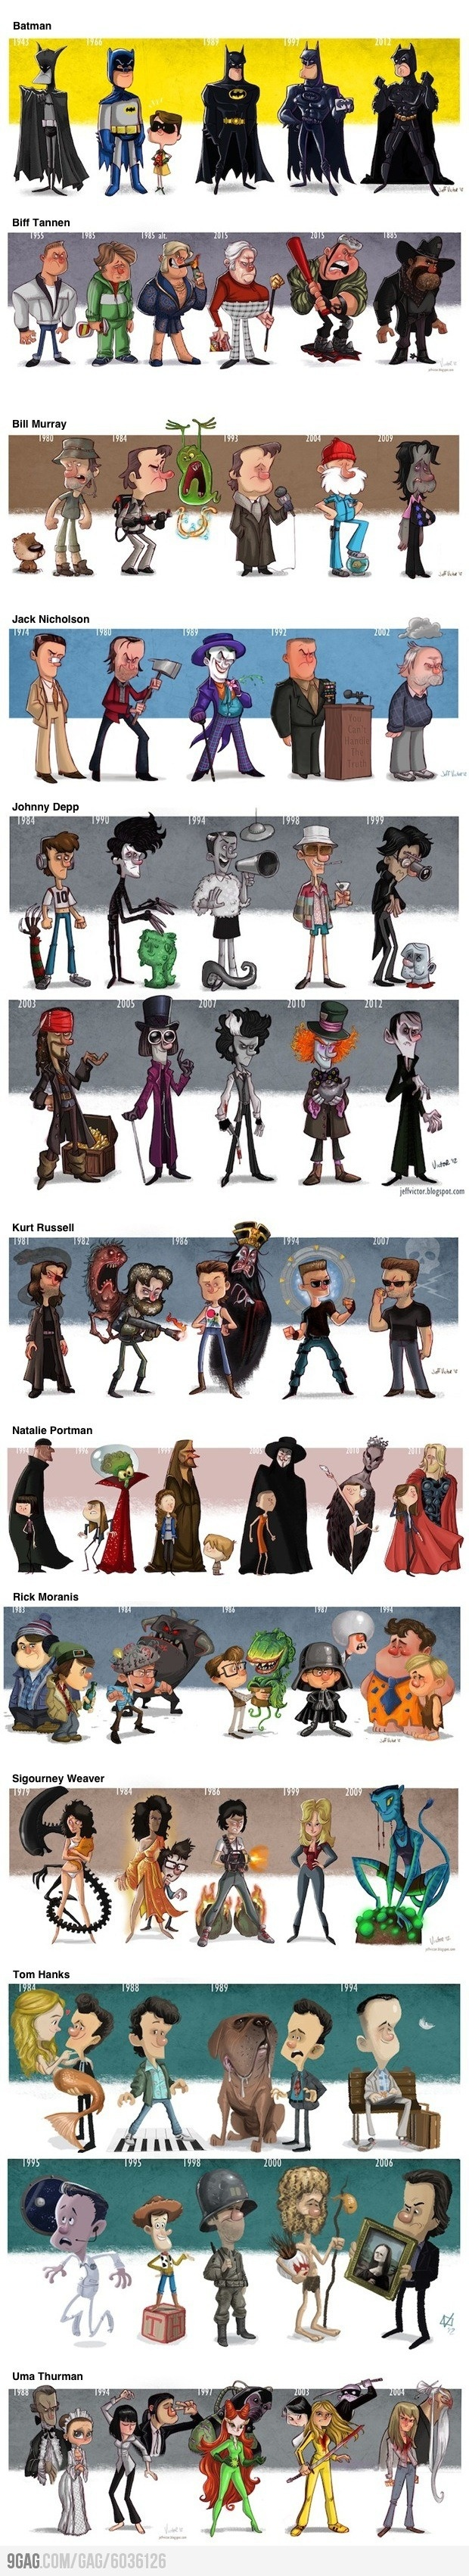 Character Design Evolution : Best images about art from shows i love on pinterest